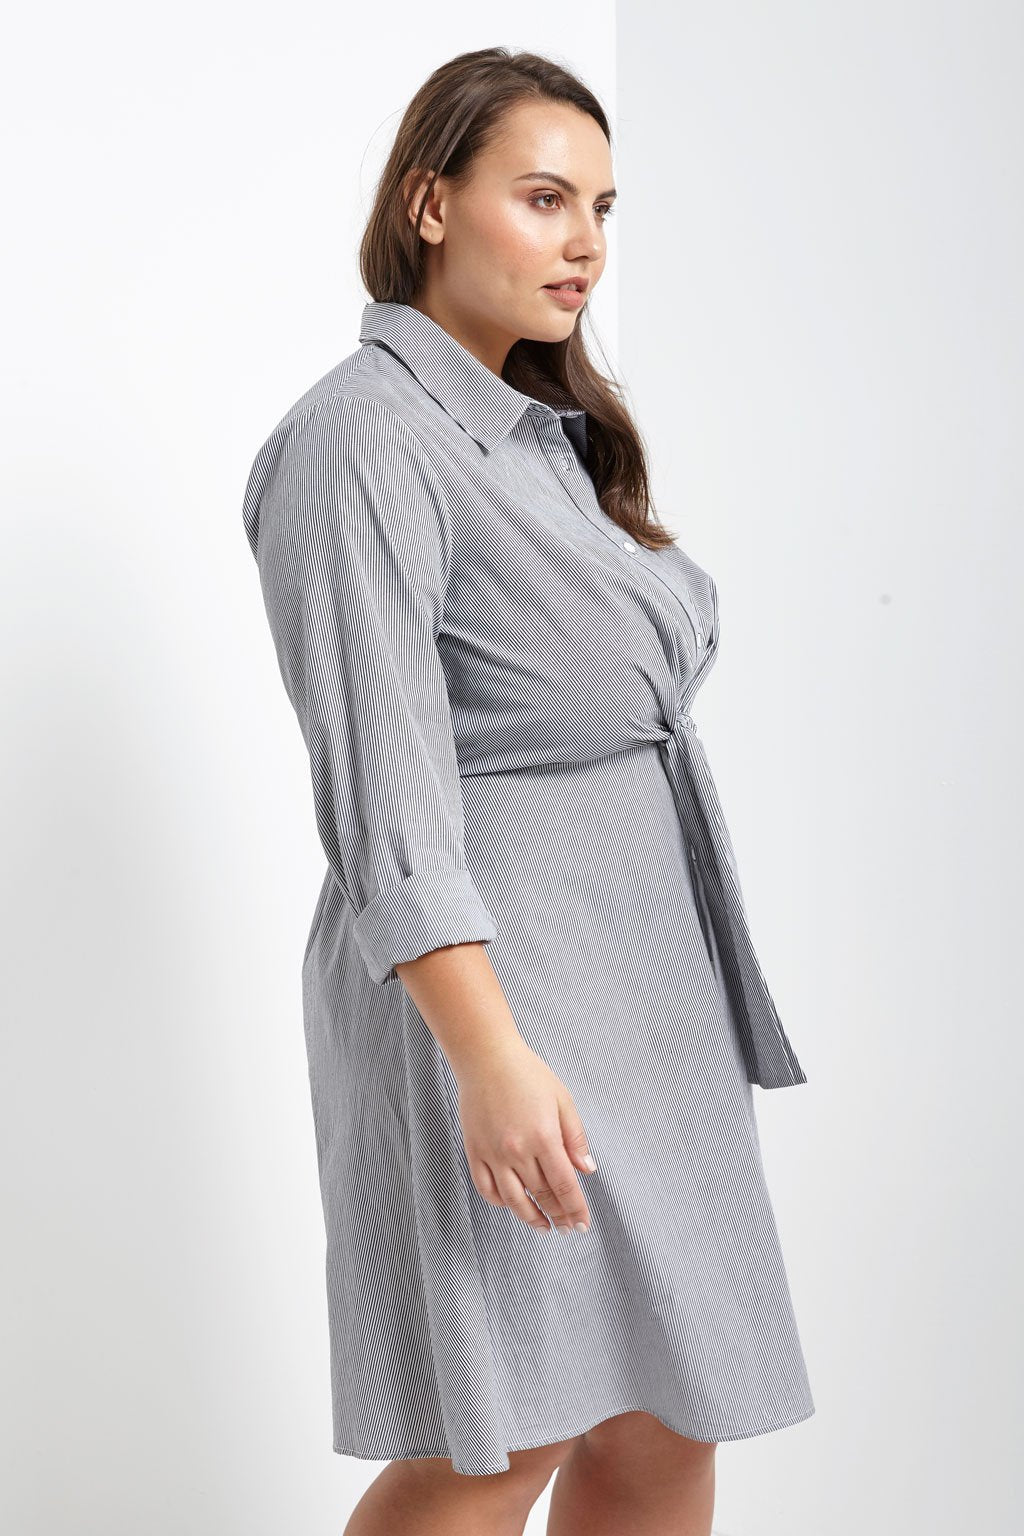 Poshsquare Plus Pinstripe Dress Plus Size